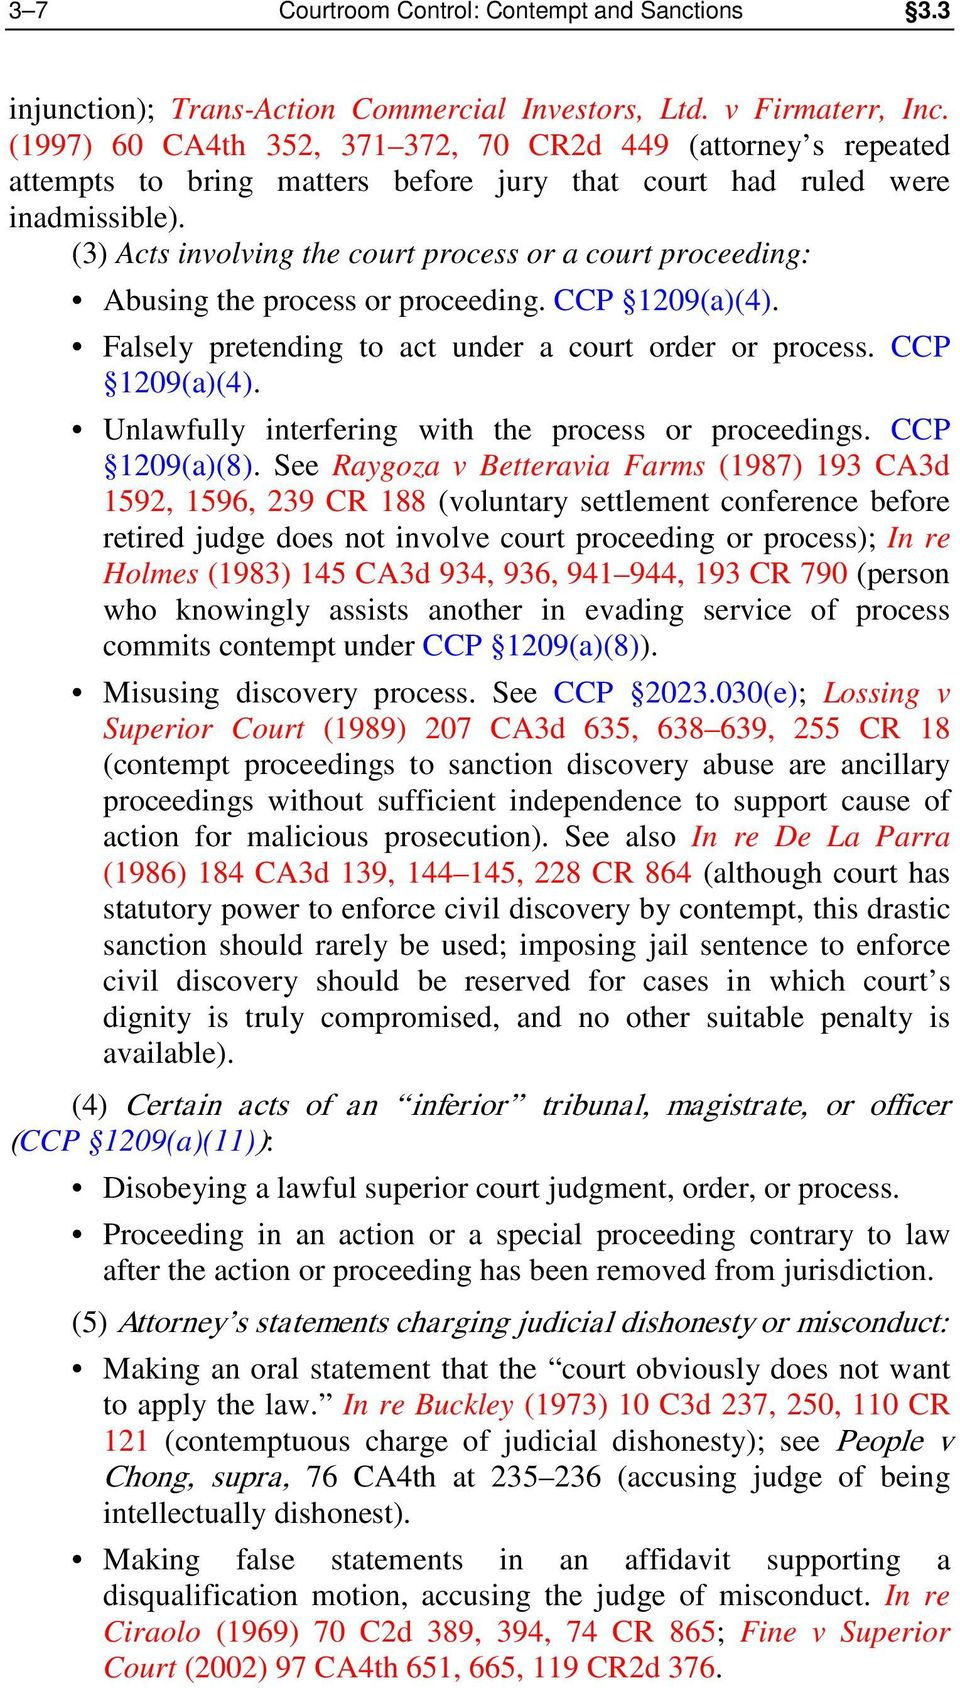 (3) Acts involving the court process or a court proceeding: Abusing the process or proceeding. CCP 1209(a)(4). Falsely pretending to act under a court order or process. CCP 1209(a)(4). Unlawfully interfering with the process or proceedings.